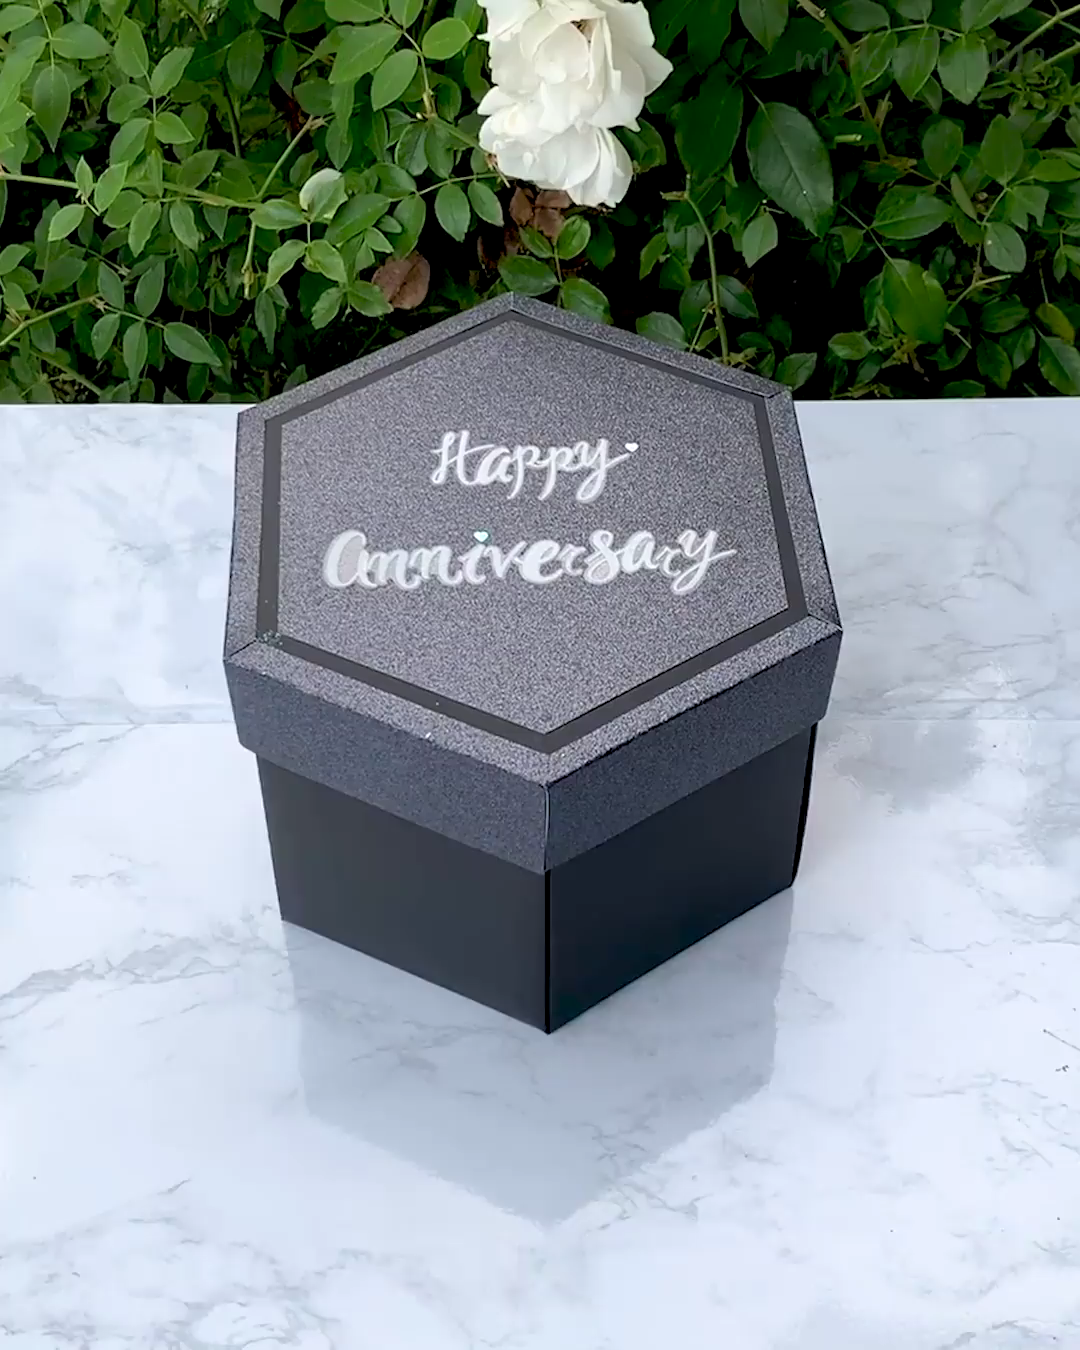 Anniversary Surprise Box 💙 . Free home delivery is available to wordwide. #explosionbox #lovingcrafts #giftbox#boxofluv #lovebox #kinderbox #familytime #cadeaupersonnalise #ideecadeau